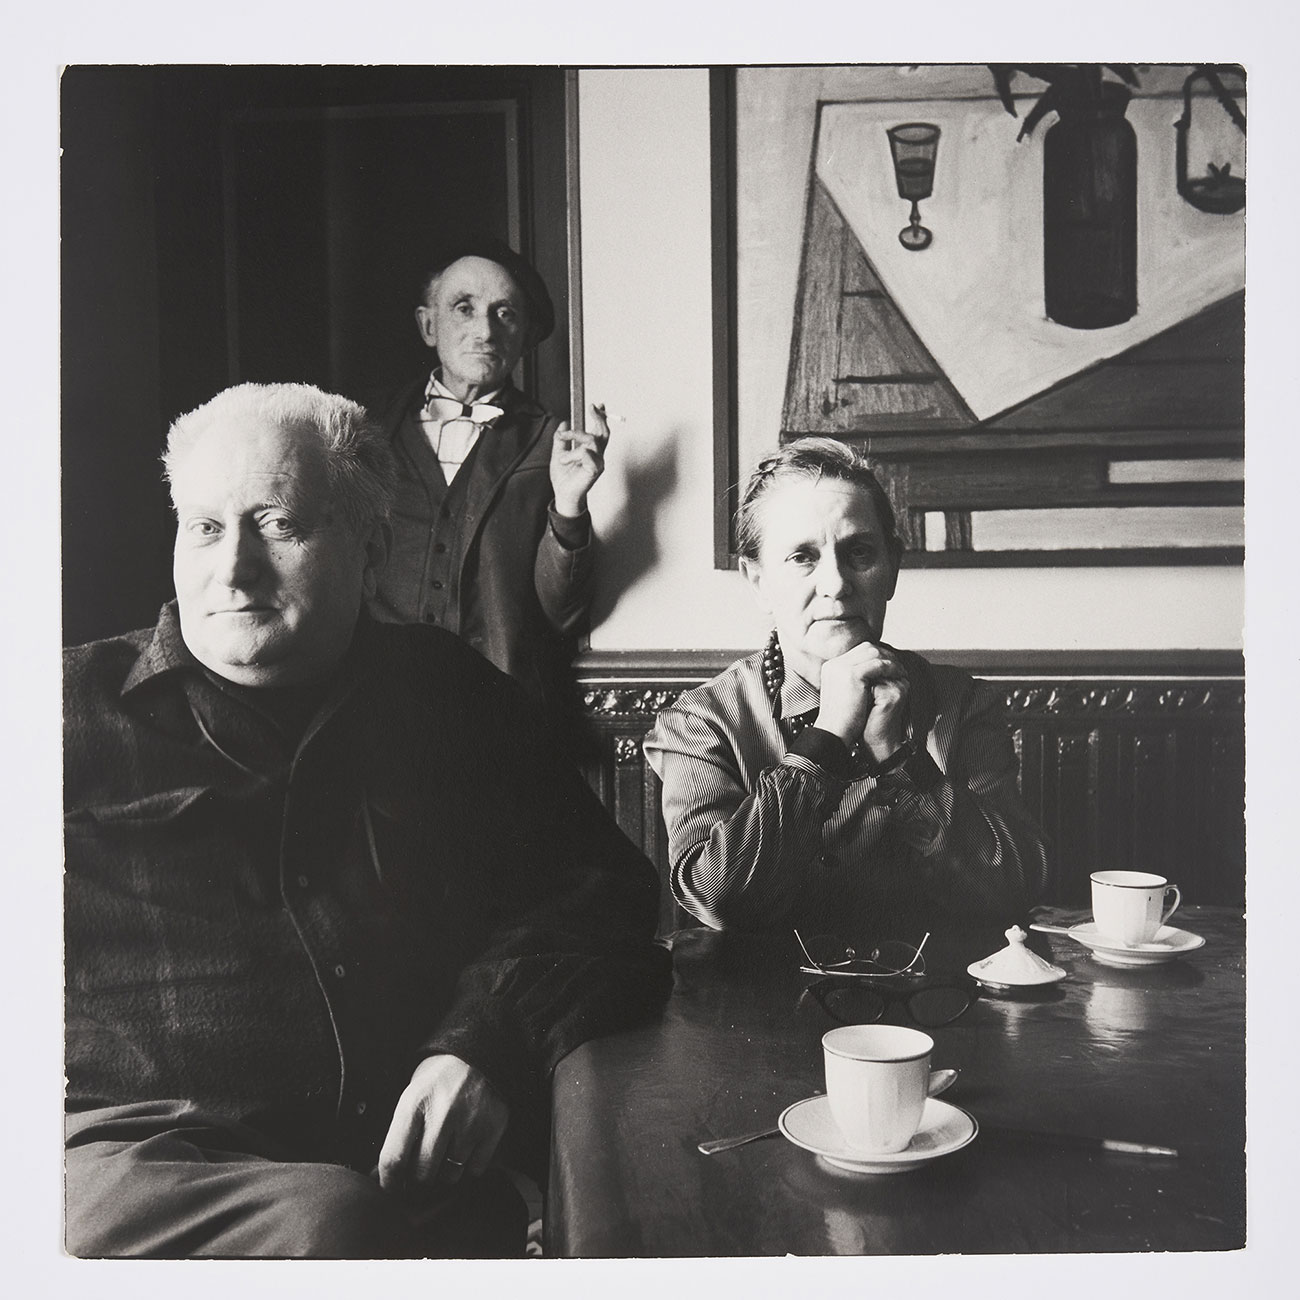 Irving Penn, Jean Giono, Élise Giono et Lucien Jacques au Paraïs, Manosque, 1957. Print offered to Jean Giono by the photographer. Association des Amis de Jean Giono © The Irving Penn Foundation